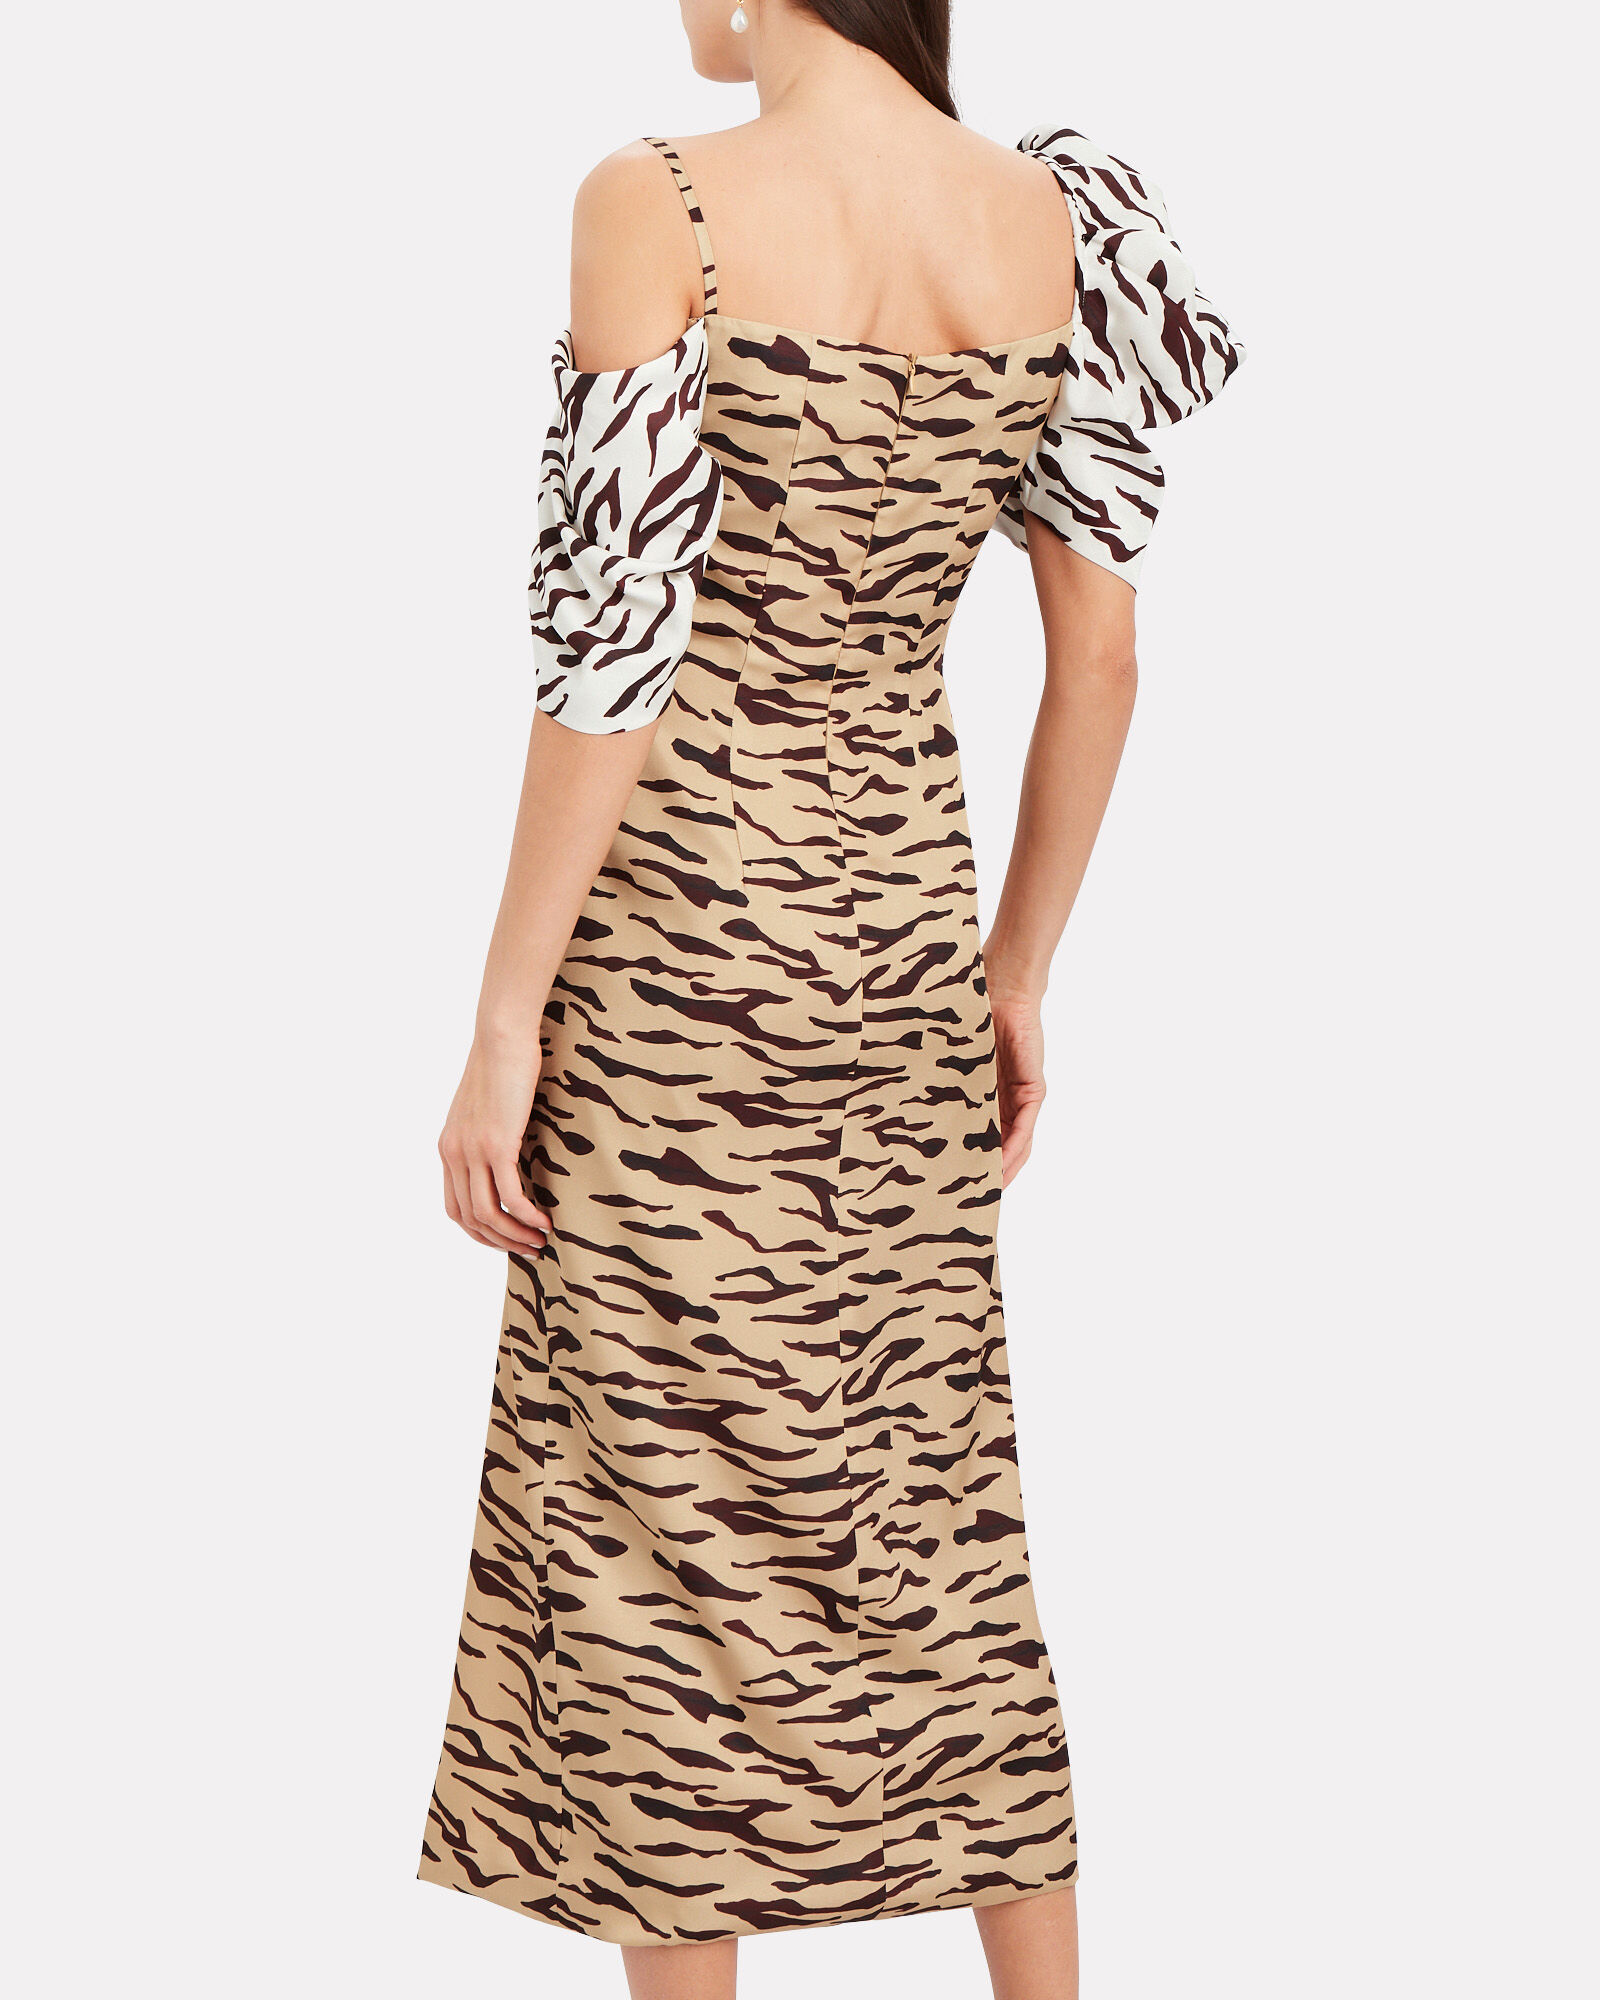 Amelia Tiger Print Dress, BEIGE/WHITE, hi-res